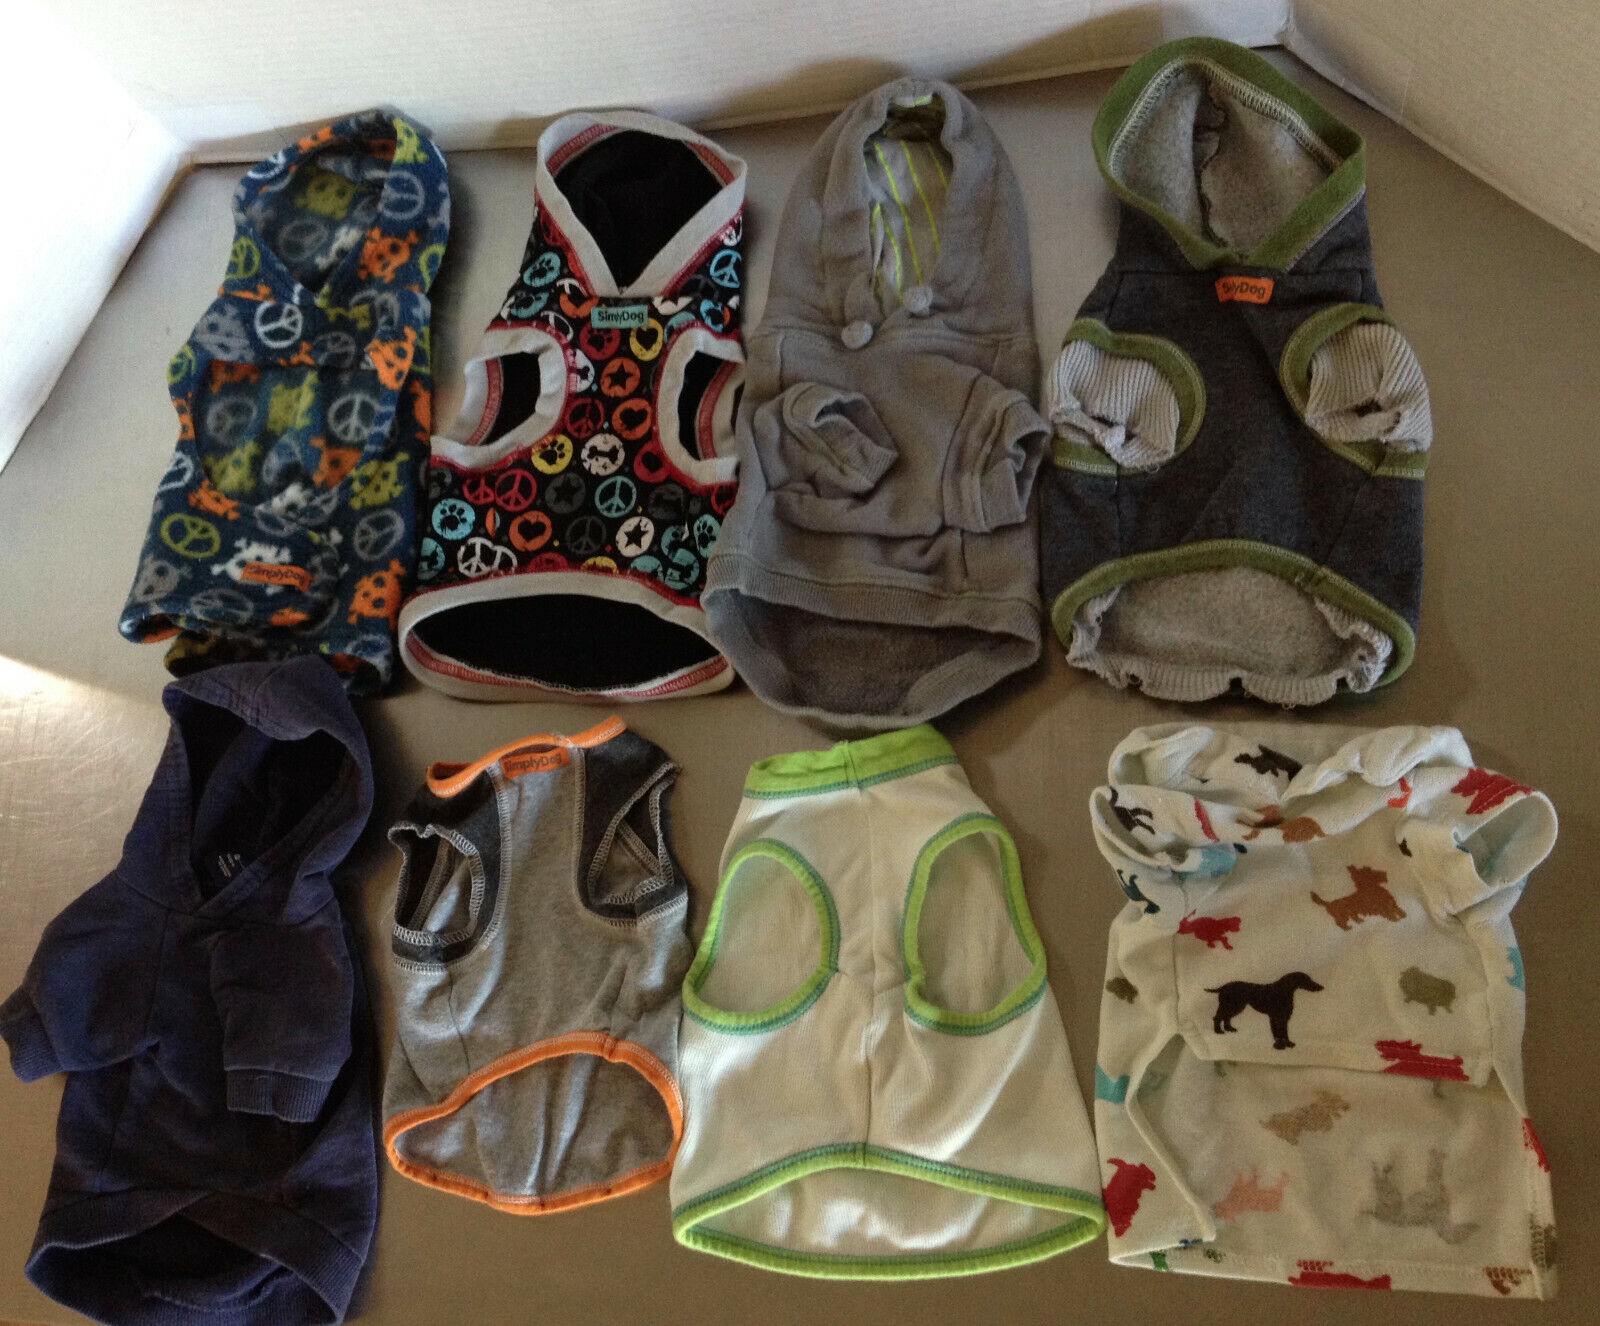 Simply Dog Clothes Lot Of 8 Items - $60.00